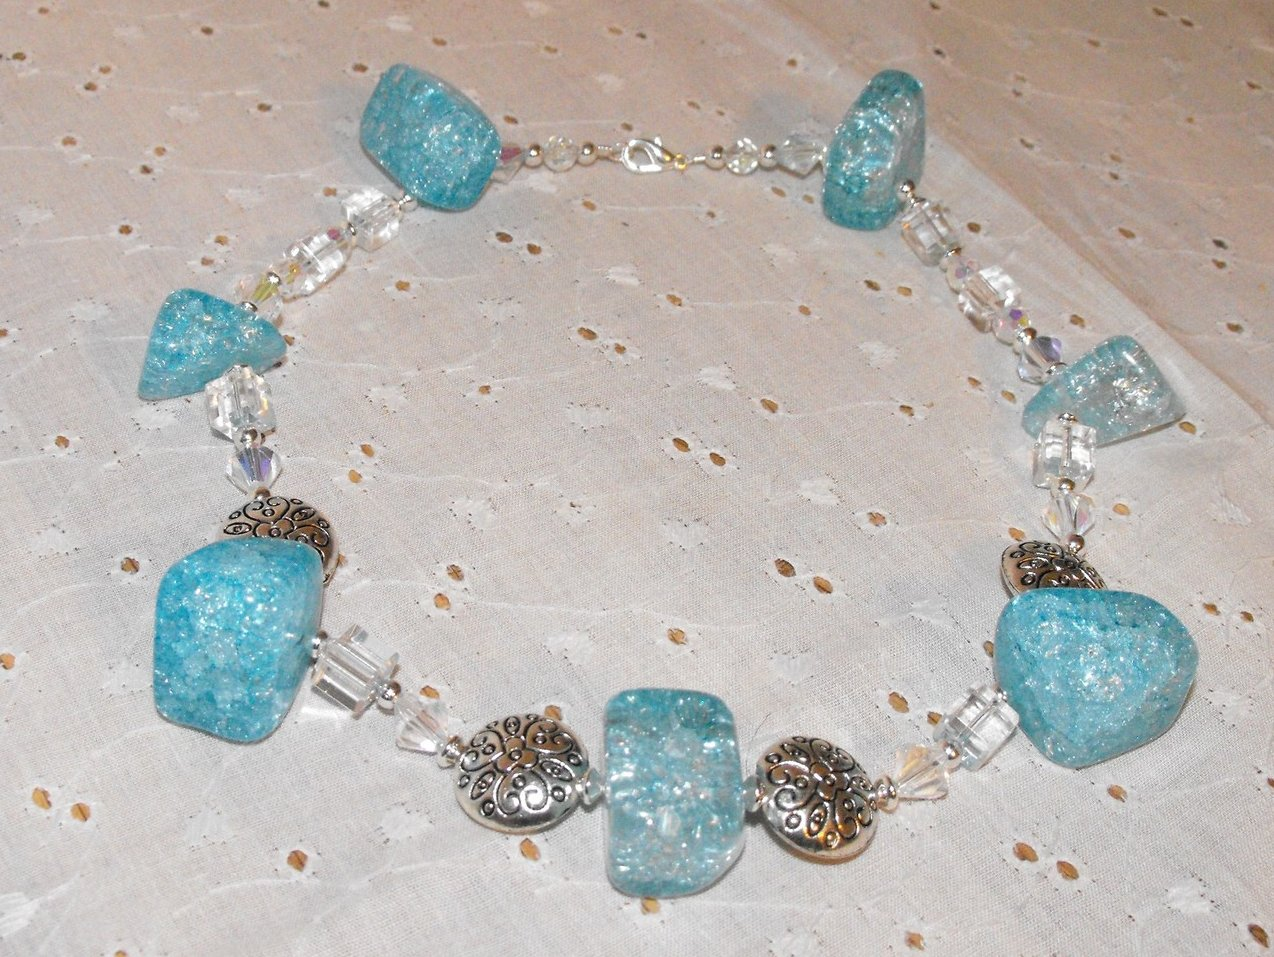 Image 2 of Chunky Necklace Choker Aqua Crackle Quartz Crystal Pewter Beads Silver Plated